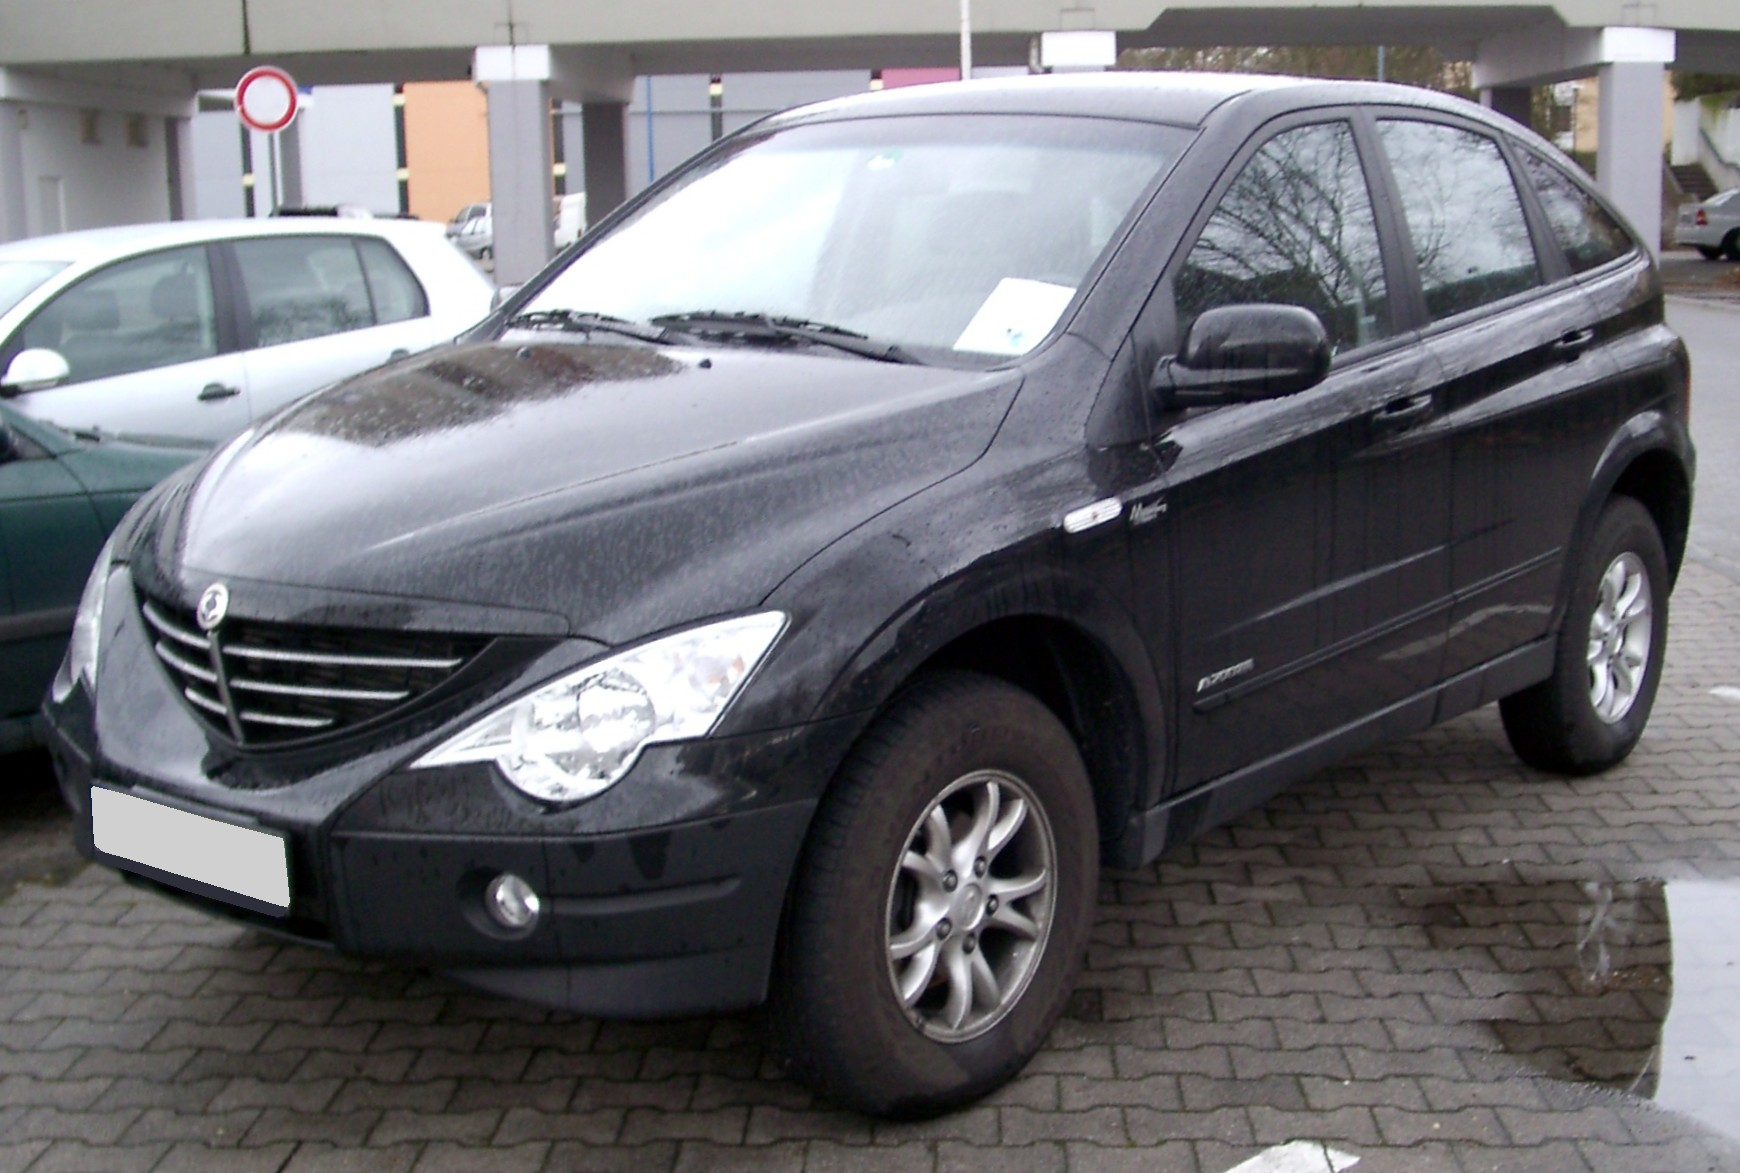 2008 Ssangyong Actyon #2